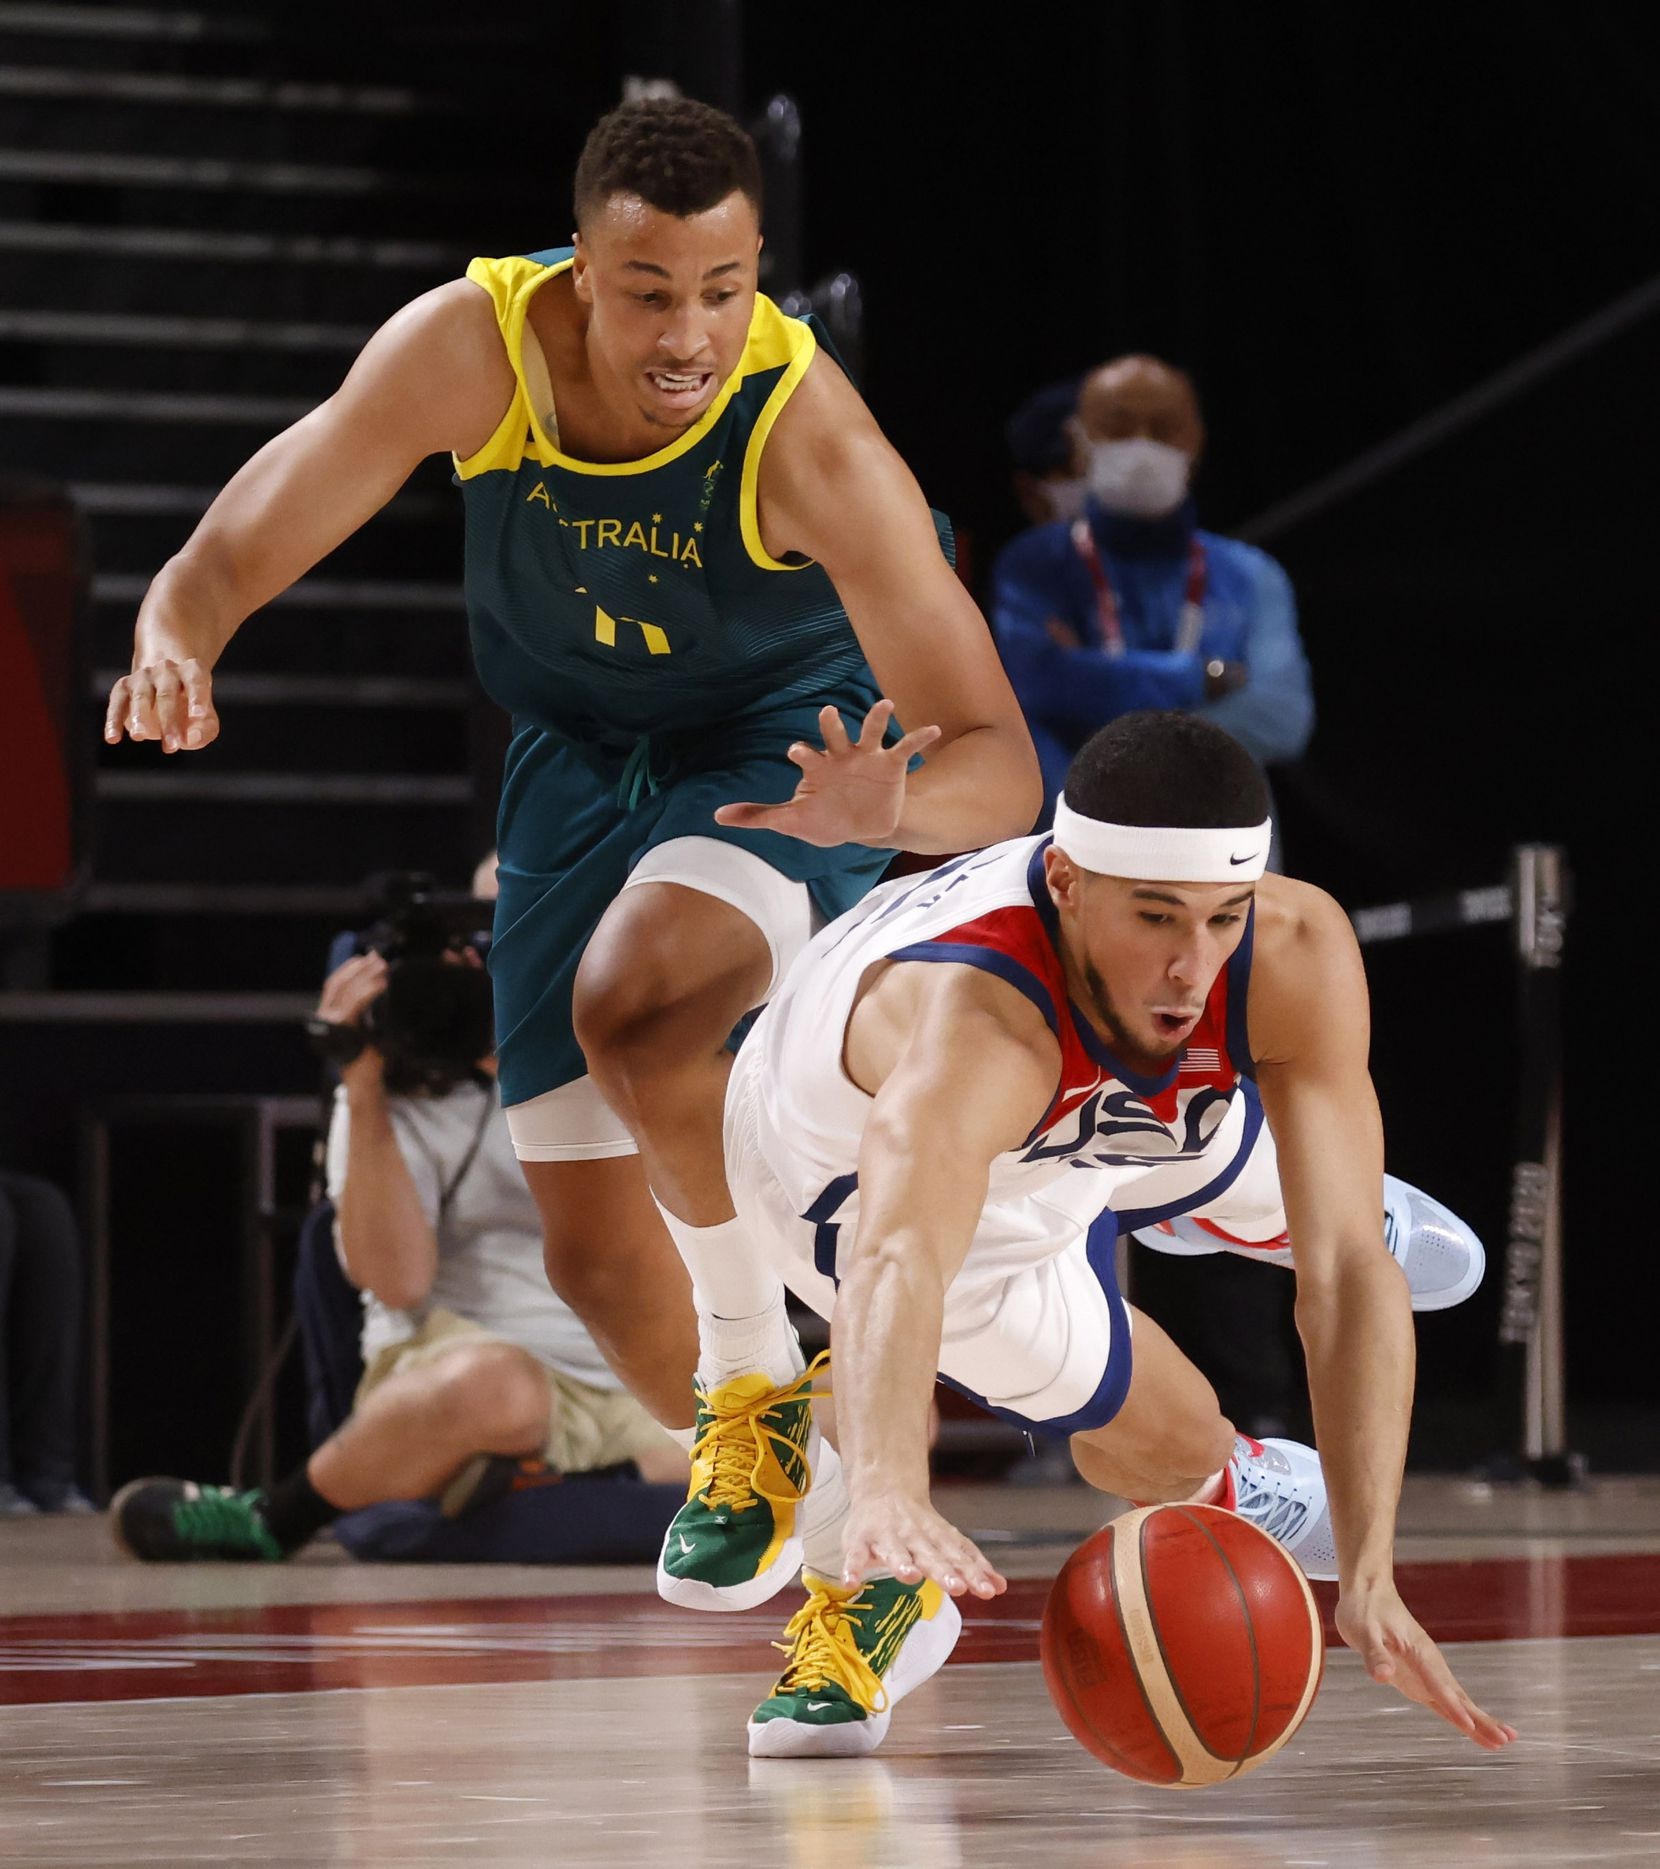 USA's Devin Booker (15) dives for a loose ball as Australia's Dante Exum (11) follows during the first half of a men's basketball semifinal at the postponed 2020 Tokyo Olympics at Saitama Super Arena, on Thursday, August 5, 2021, in Saitama, Japan. USA defeated Australia 97-78 to advance to the gold medal game. (Vernon Bryant/The Dallas Morning News)